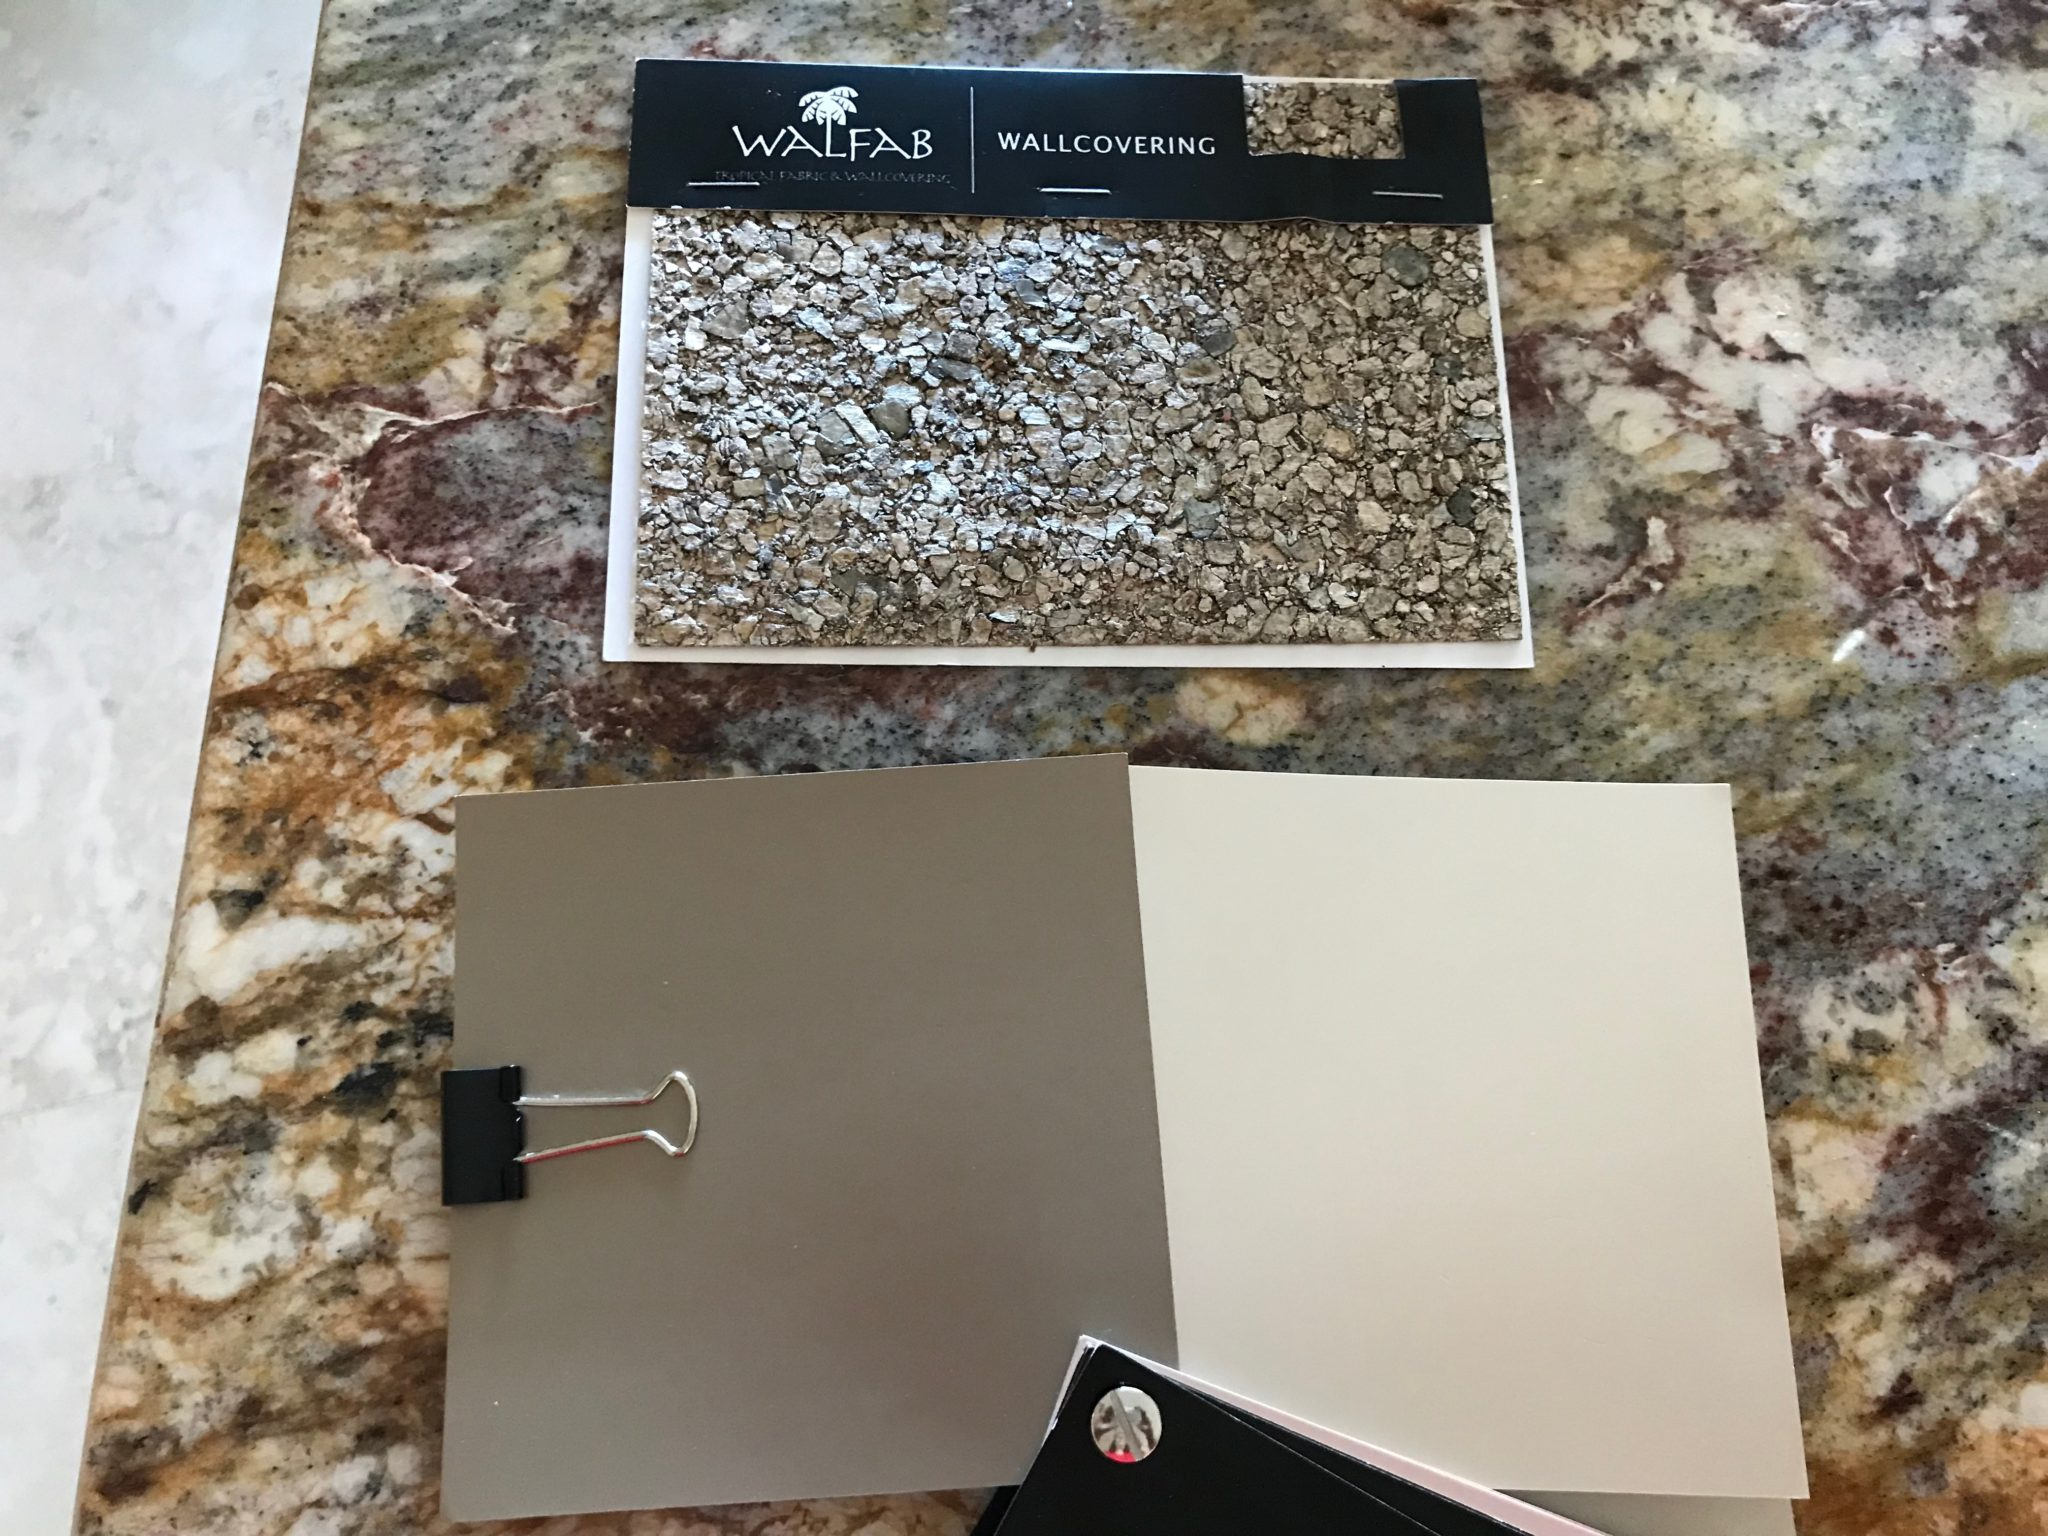 Matching paint colors to a wallpaper sample.